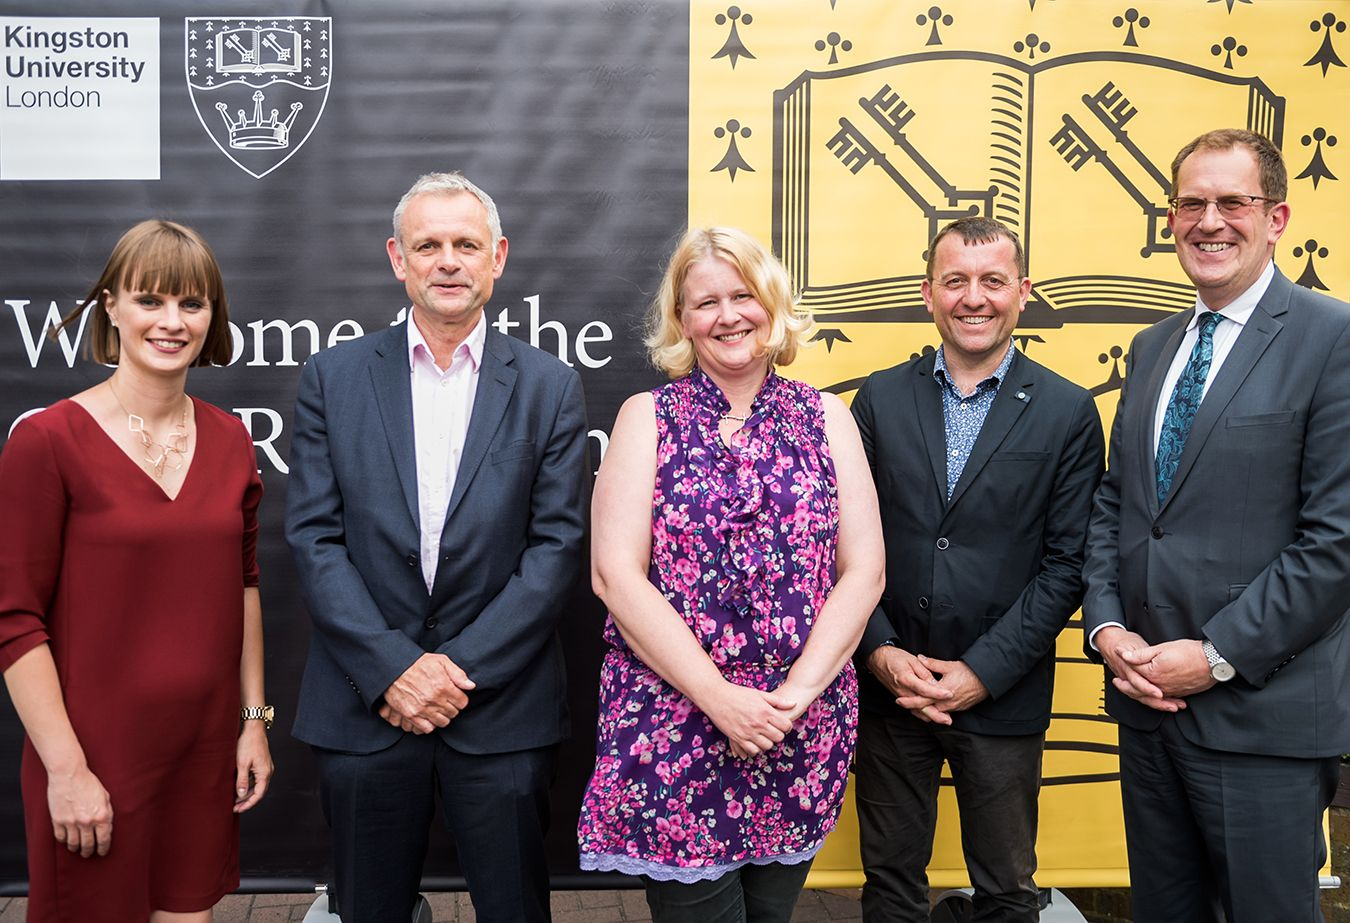 (left to right) Kingston First chief executive Kirsten Henly, Deputy chief executive of Kingston Council Roy Thompson, Council leader Councillor Liz Green, Pro Vice-Chancellor for Culture and Public Engagement Professor Colin Rhodes and University Vice-Chancellor Professor Steven Spier.